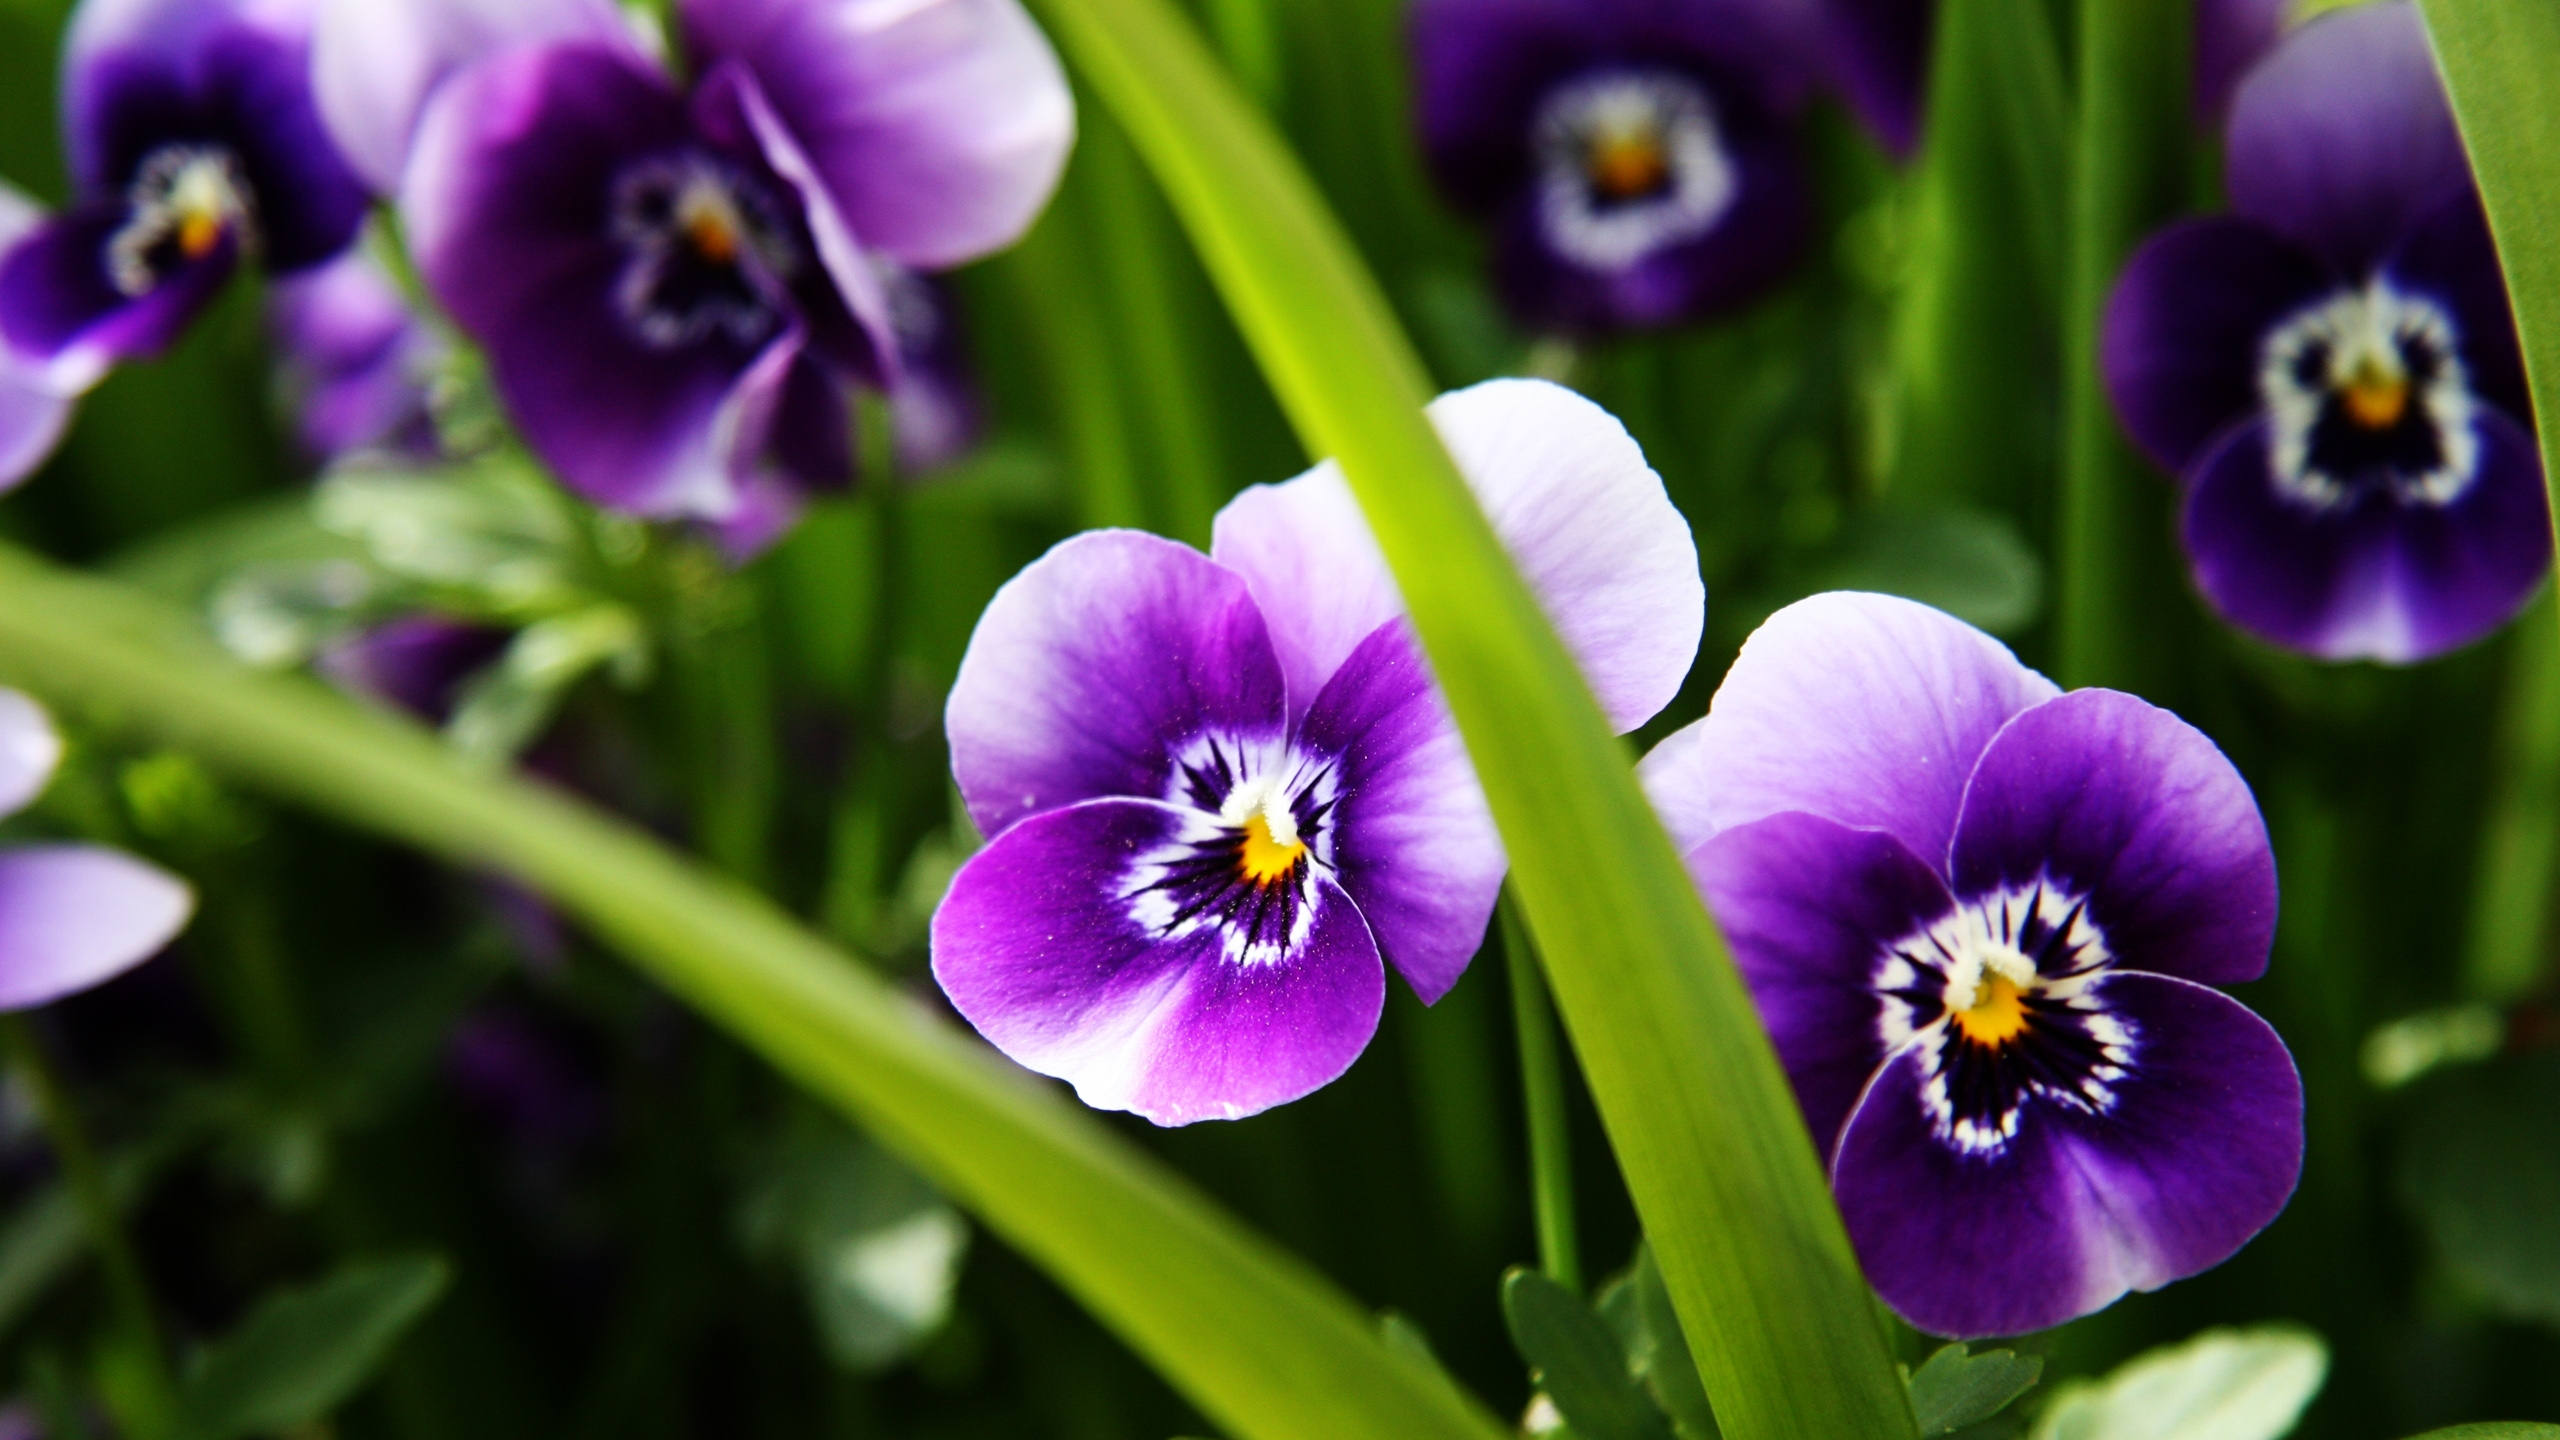 lavender flowers wallpapers 2560x1440 - photo #3